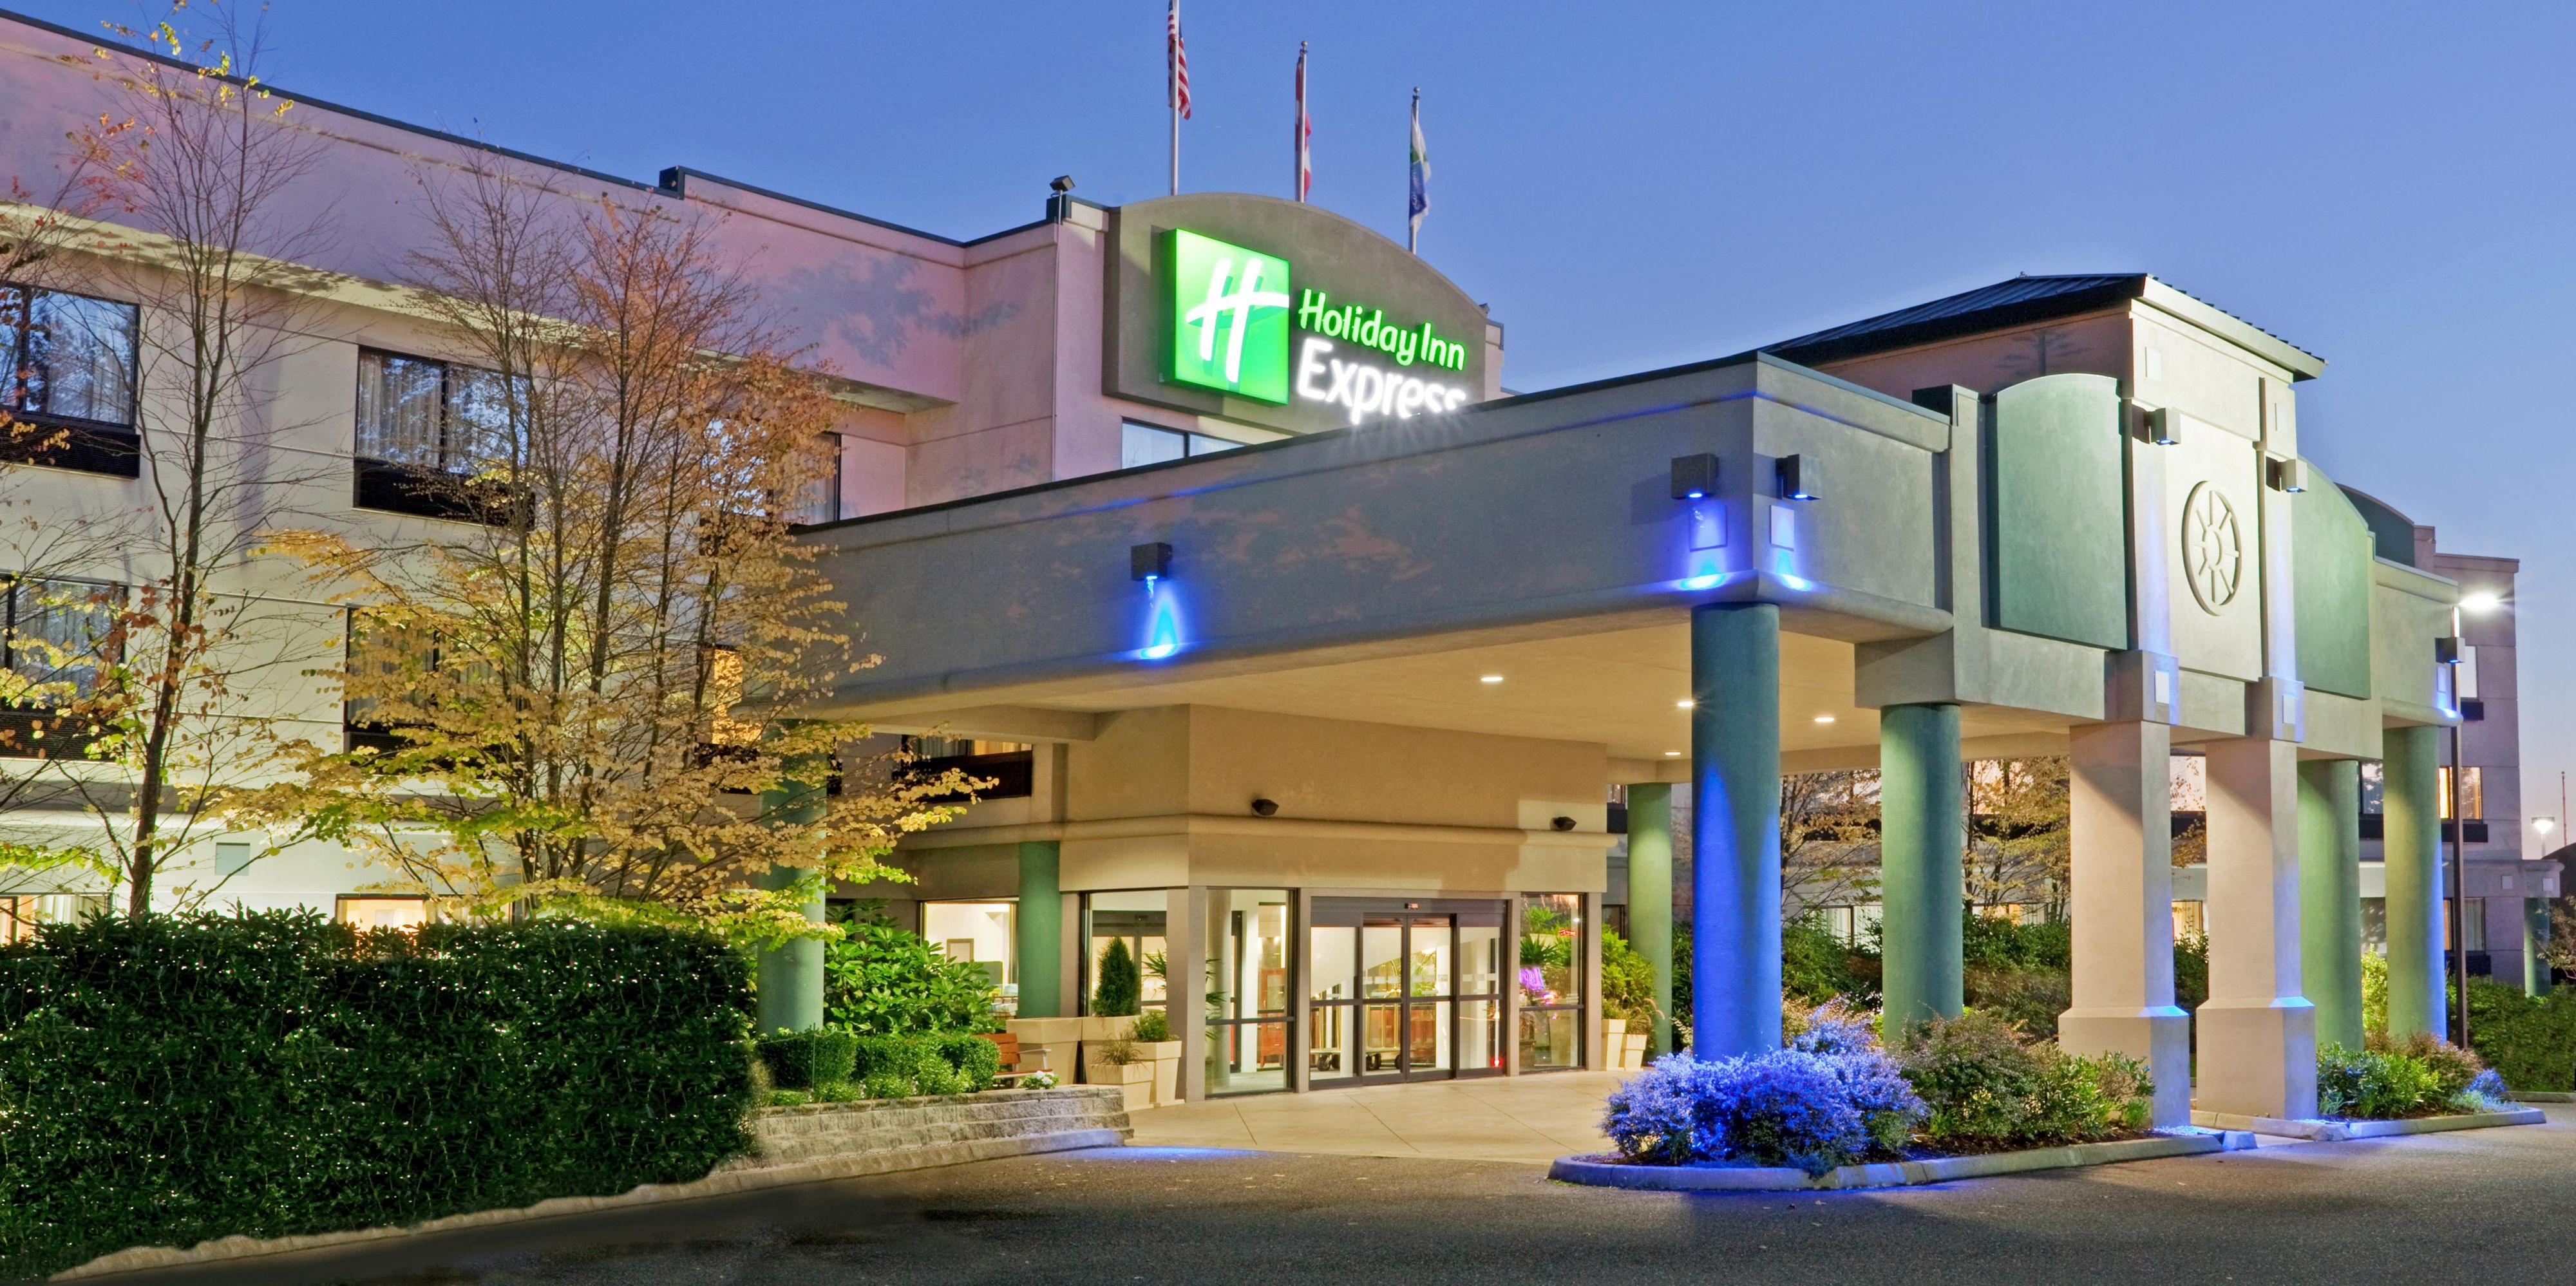 Holiday Inn Express Bellingham 4223840245 2x1